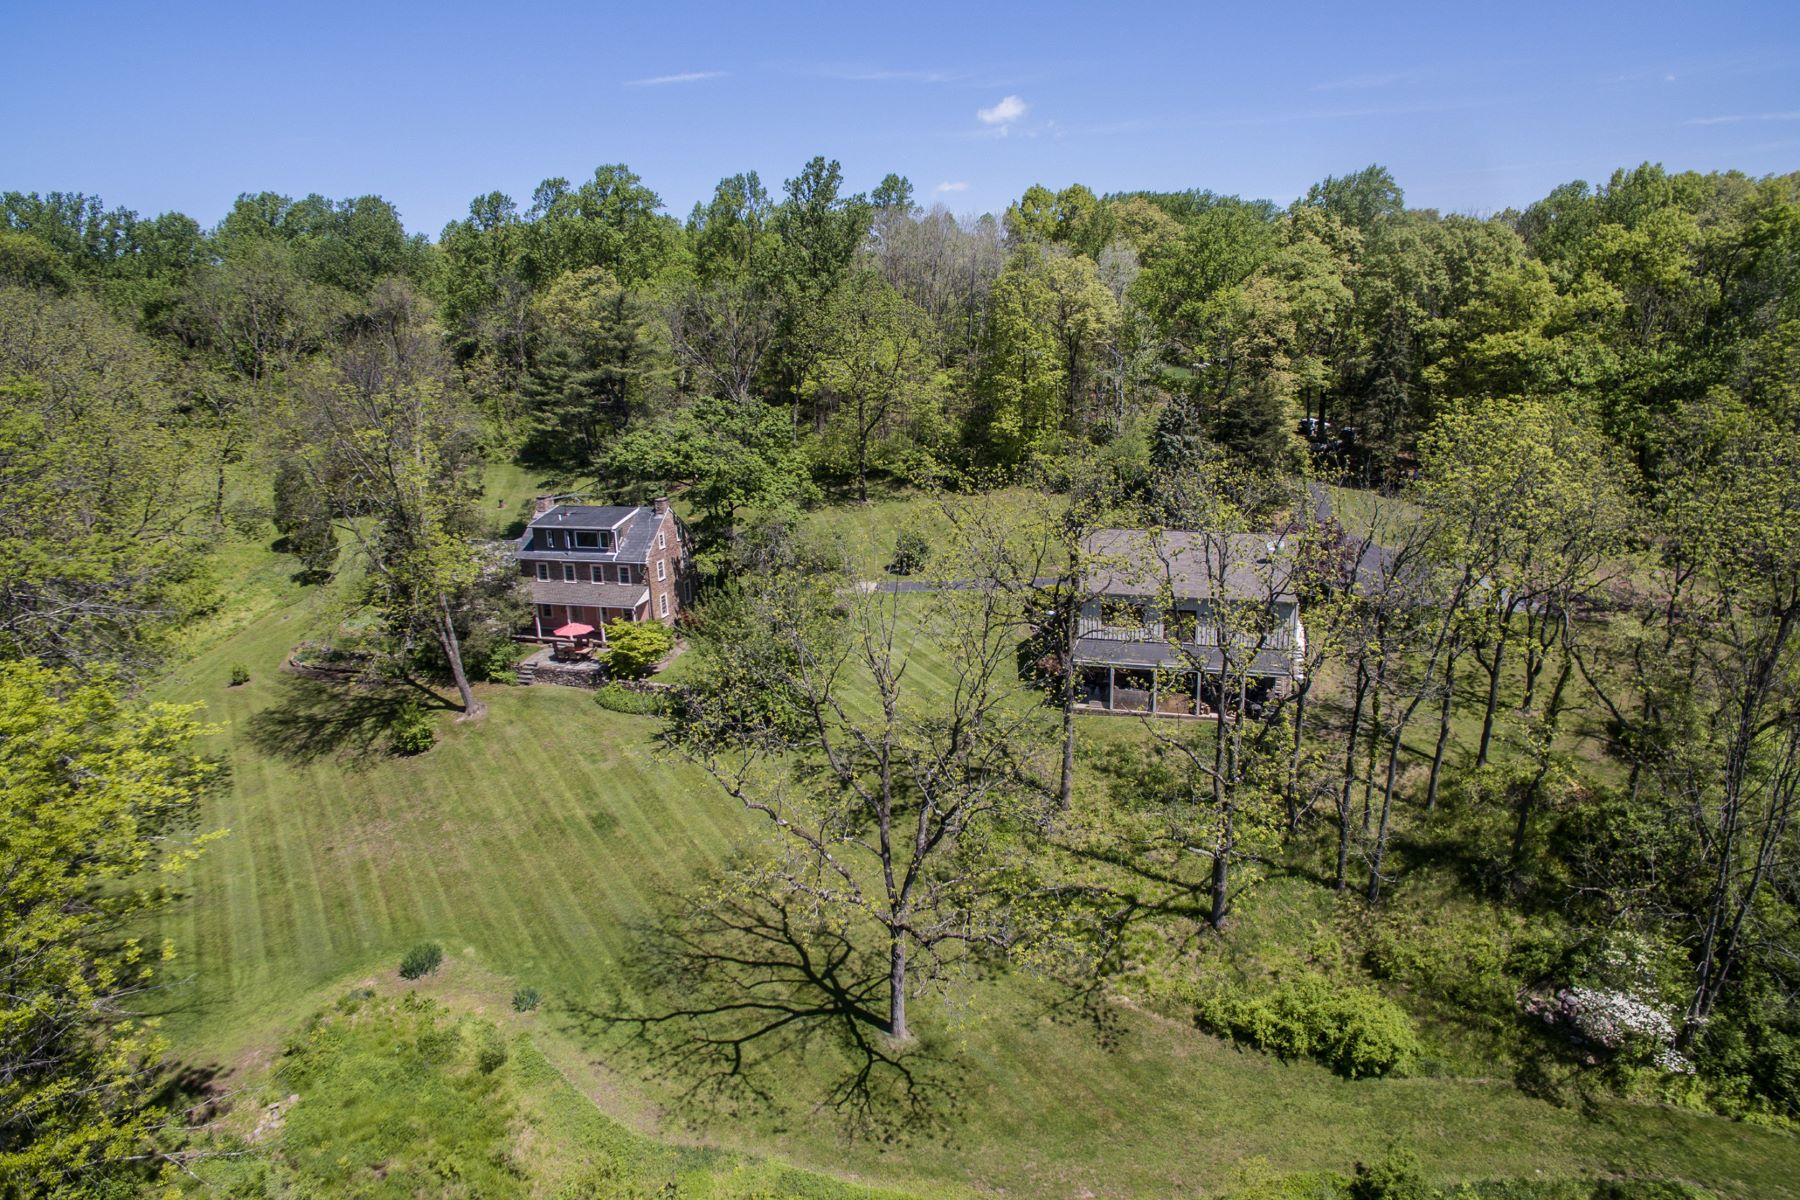 Single Family Home for Sale at 2415 Deer Trl Rd Coopersburg, Pennsylvania 18036 United States